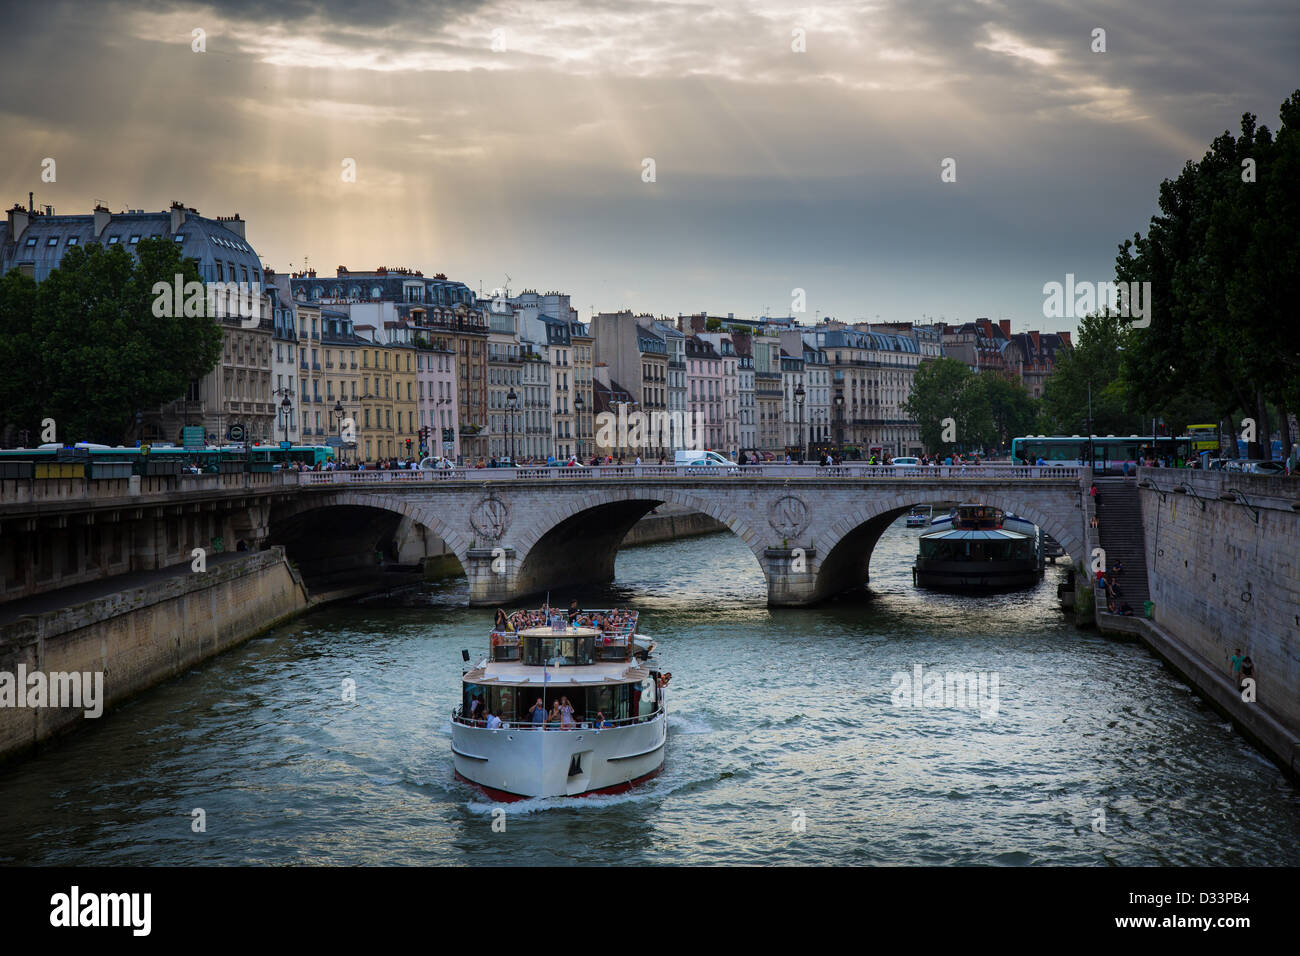 Sightseeing boat on the river Seine in Paris, France - Stock Image